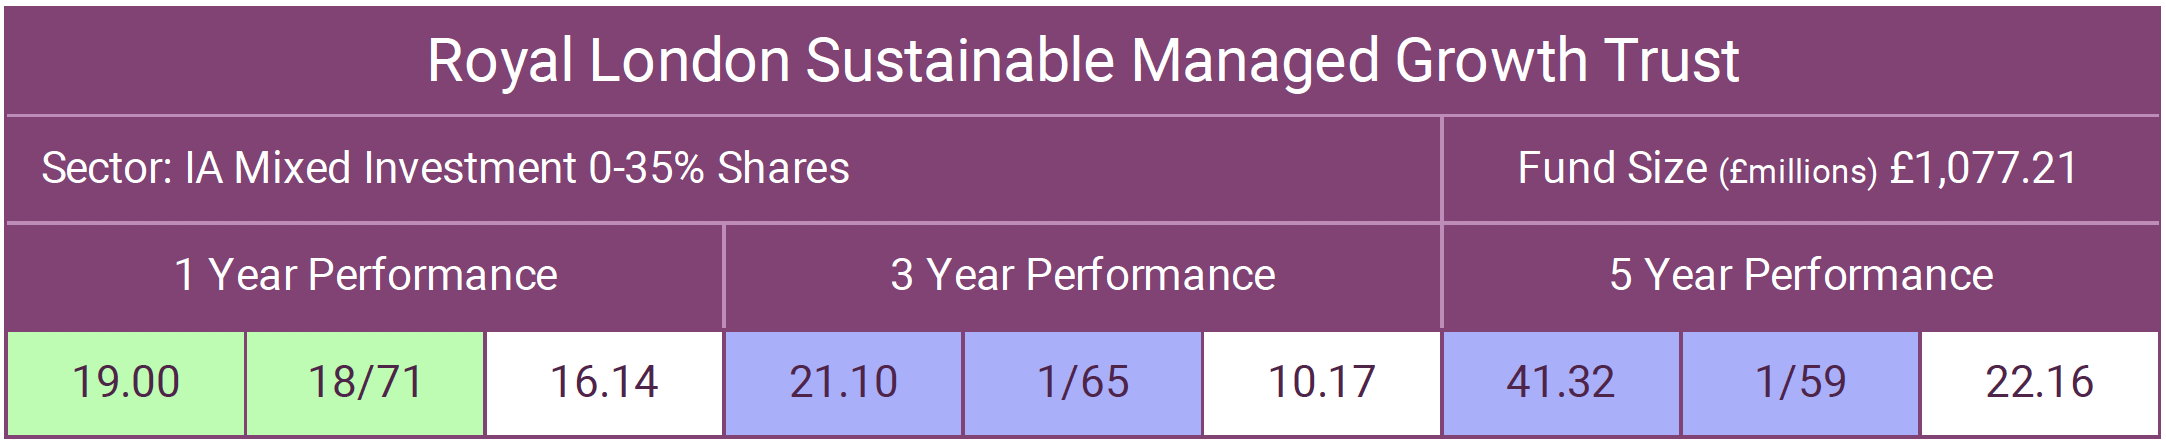 RL Sustainable Managed Growth Trust